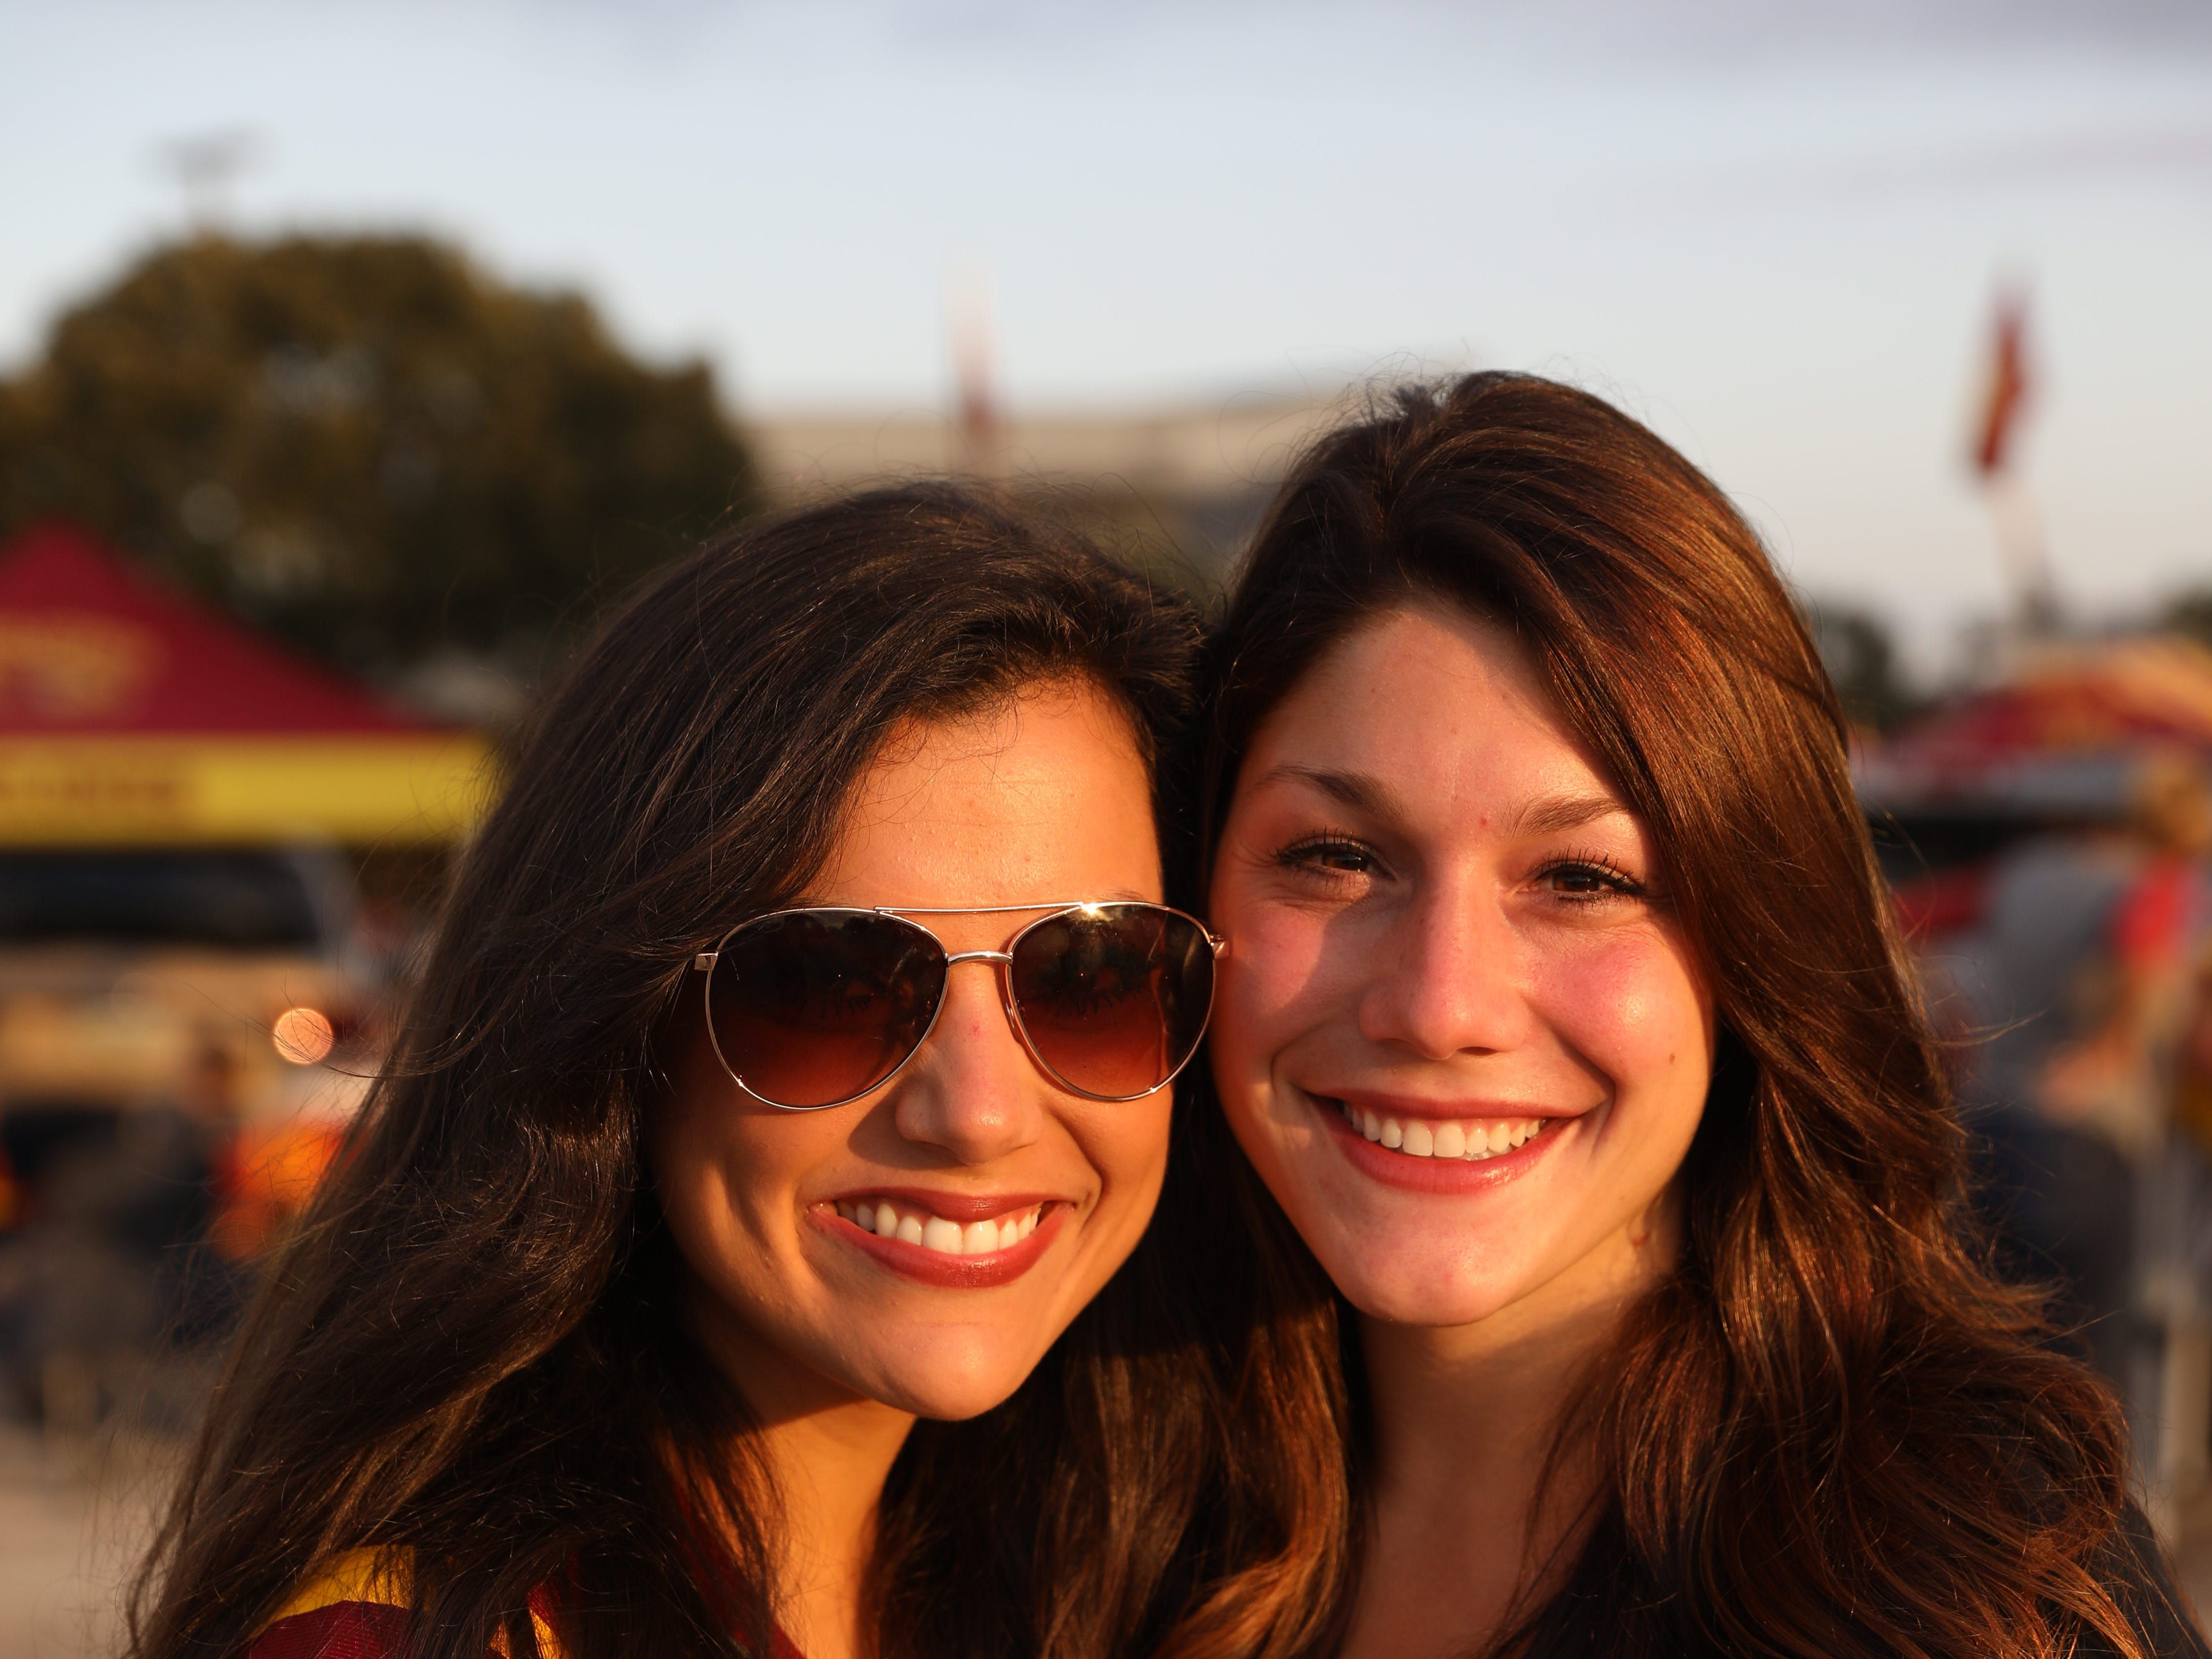 Lisa Vanderkamp, 25, (left) and Hannah Seeley, 24, both of Denver, Saturday, Sept. 15, 2018, before the Iowa State football game against Oklahoma in Ames.